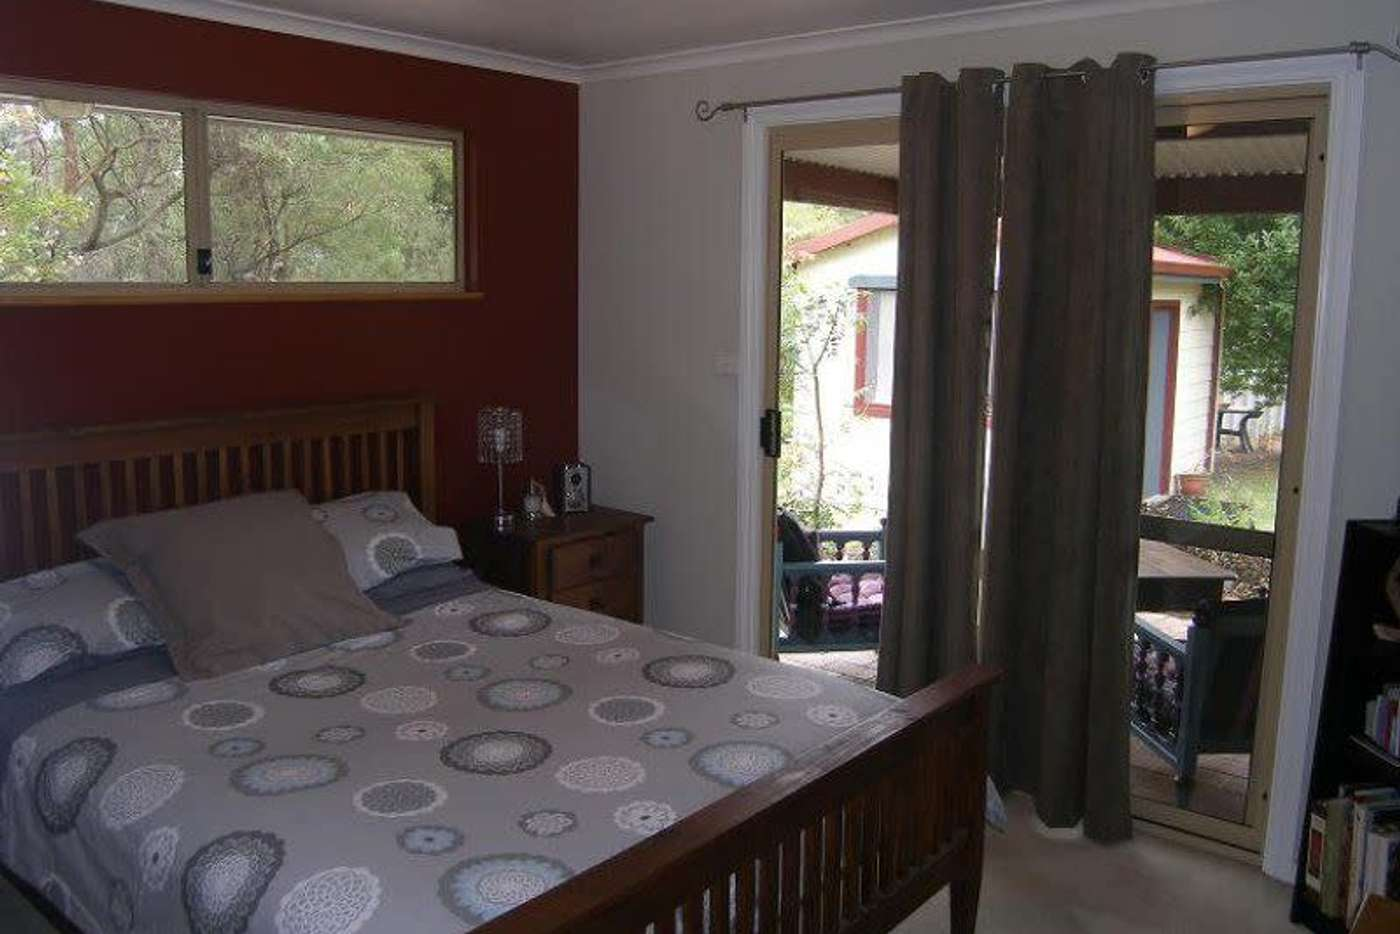 Fifth view of Homely house listing, 50 Buckley St, Denmark WA 6333